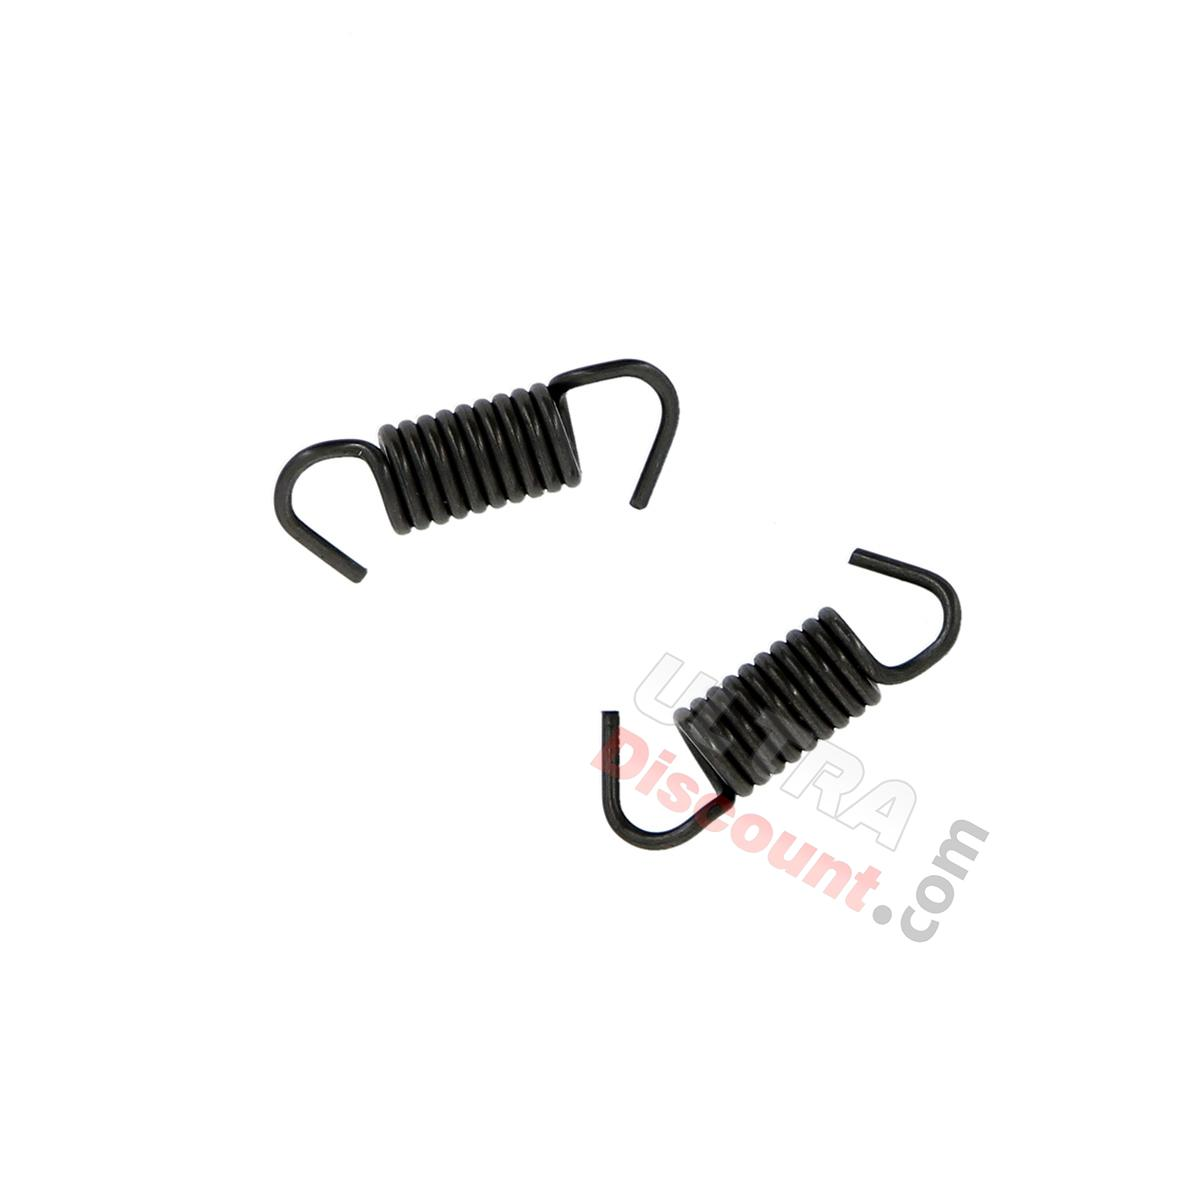 Set Of 2 Brake Shoes Springs For Scooter Baotian Bt49qt 9 Brake System Baotian Parts